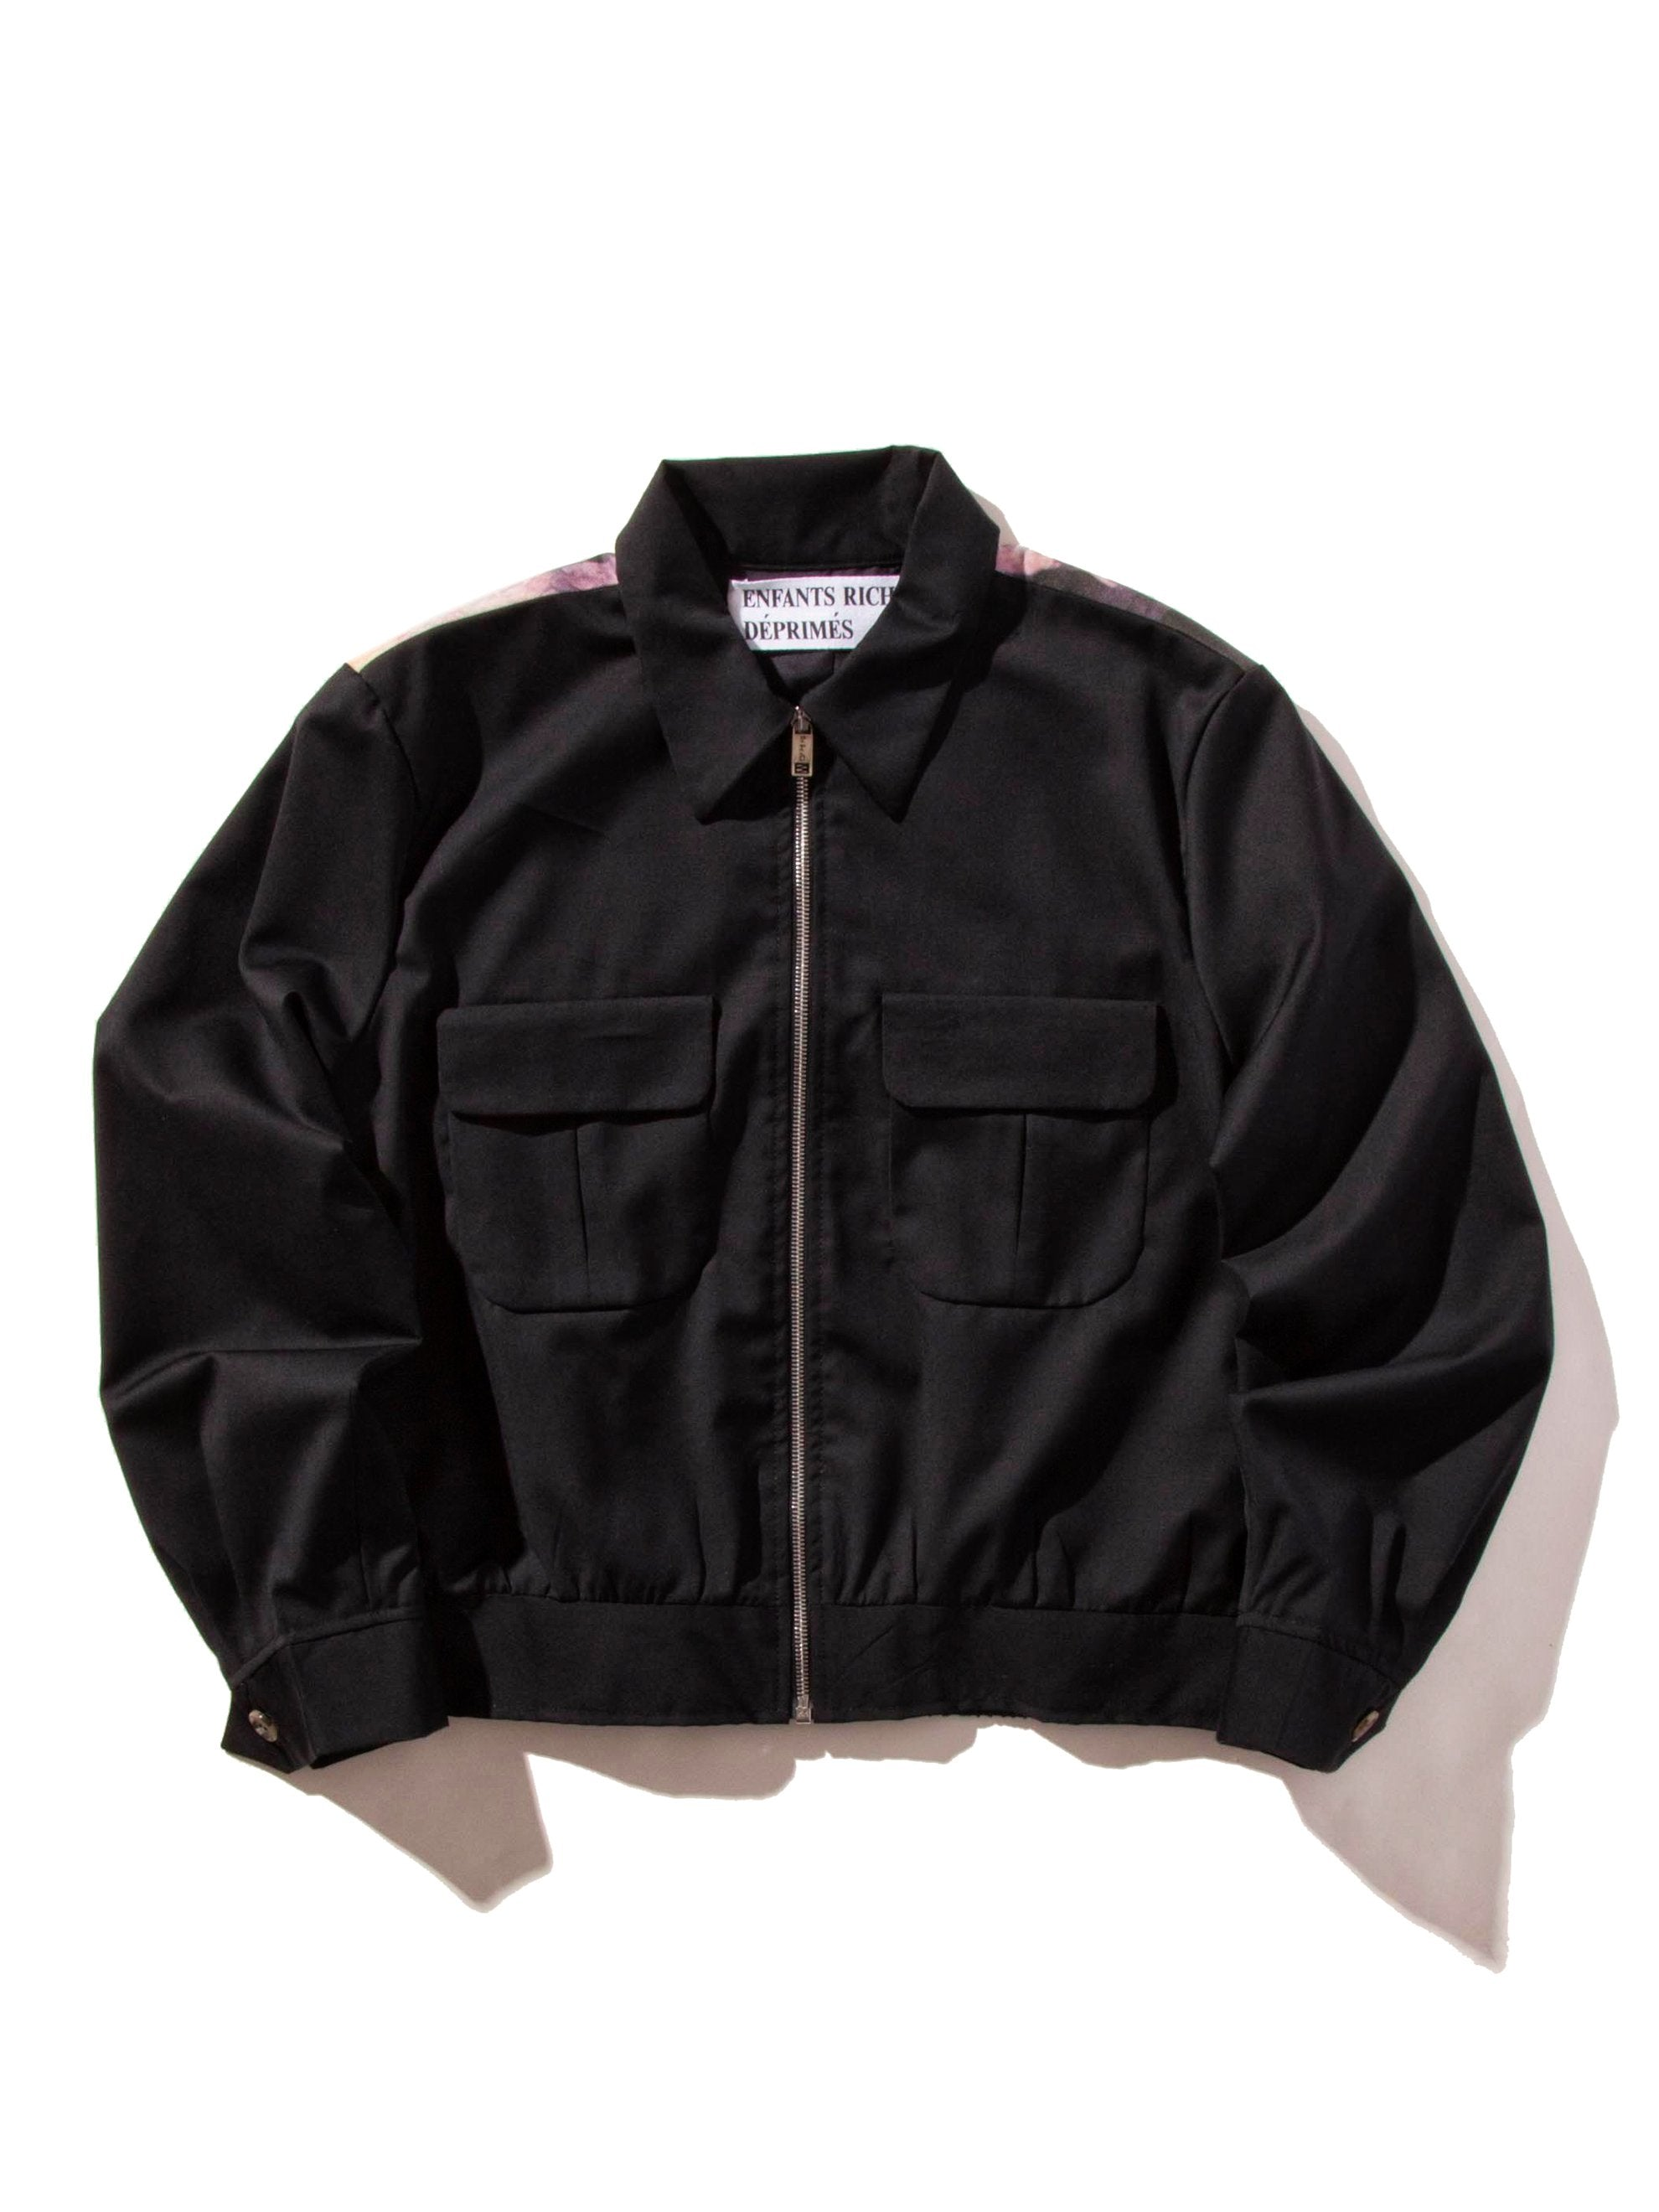 Black Christiane F Cropped Cadet Jacket 6